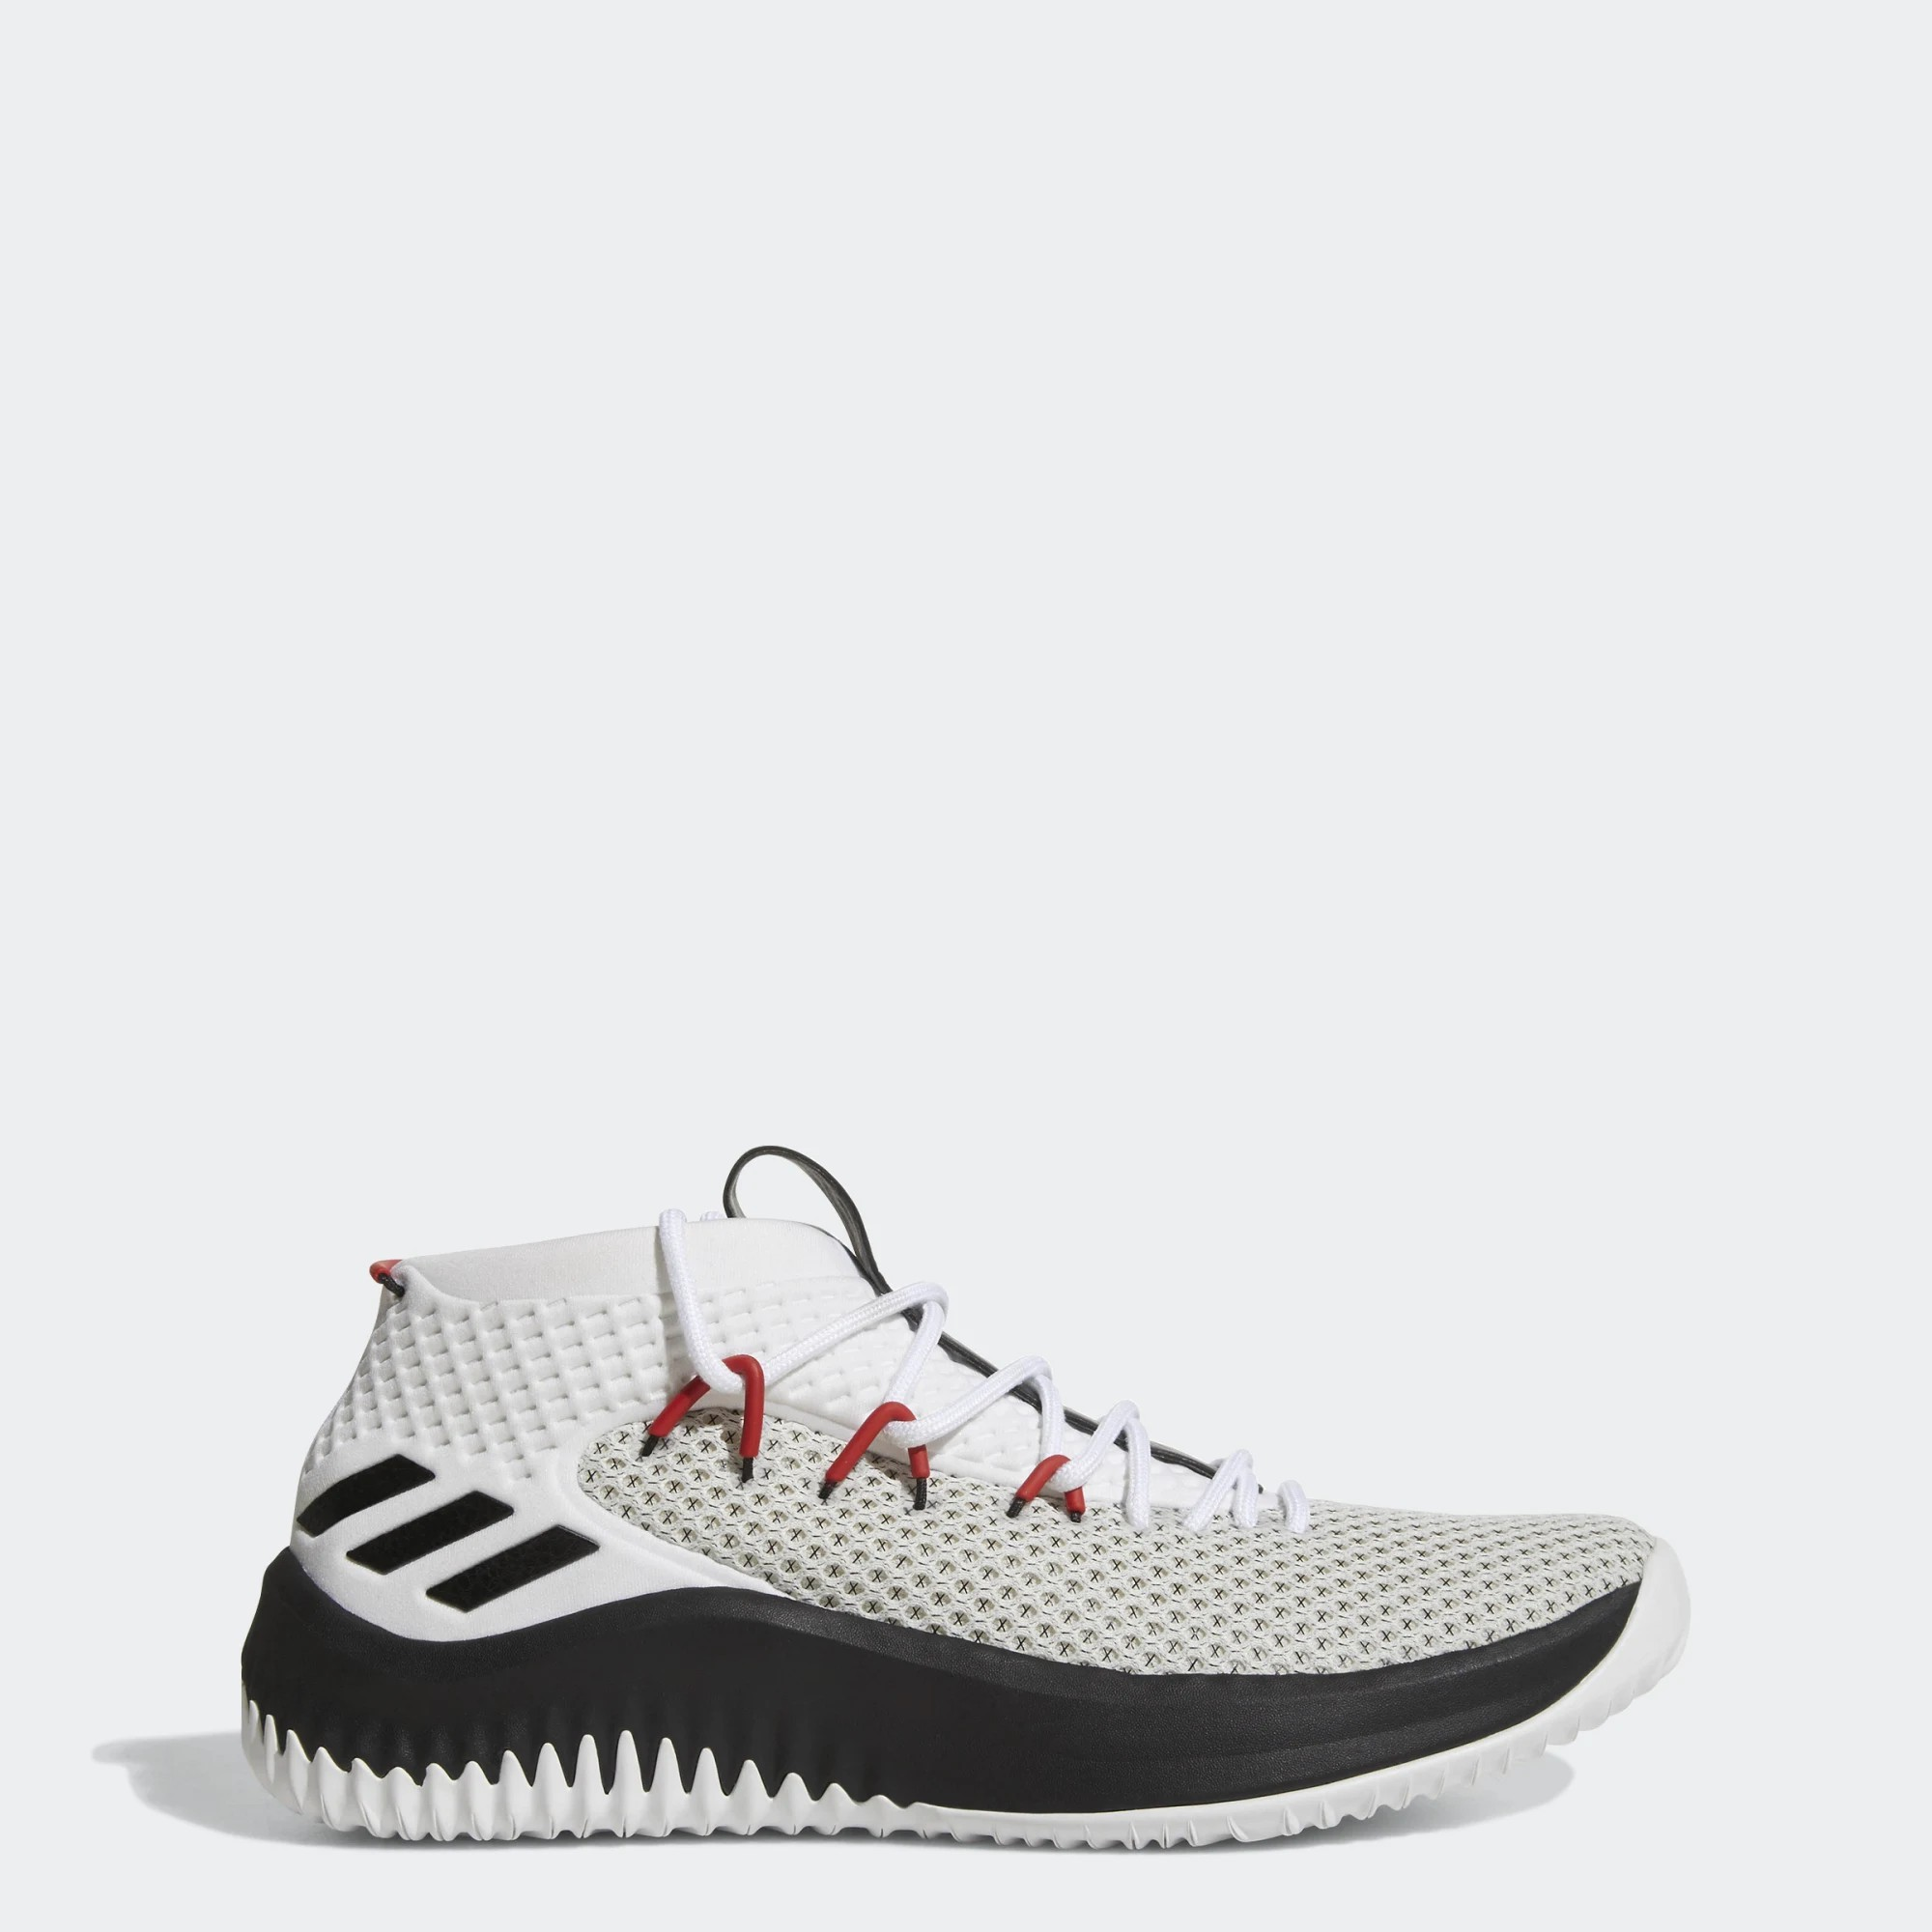 adidas Dame 4 Rip City Homme By3759 Noir Blanche Rouge